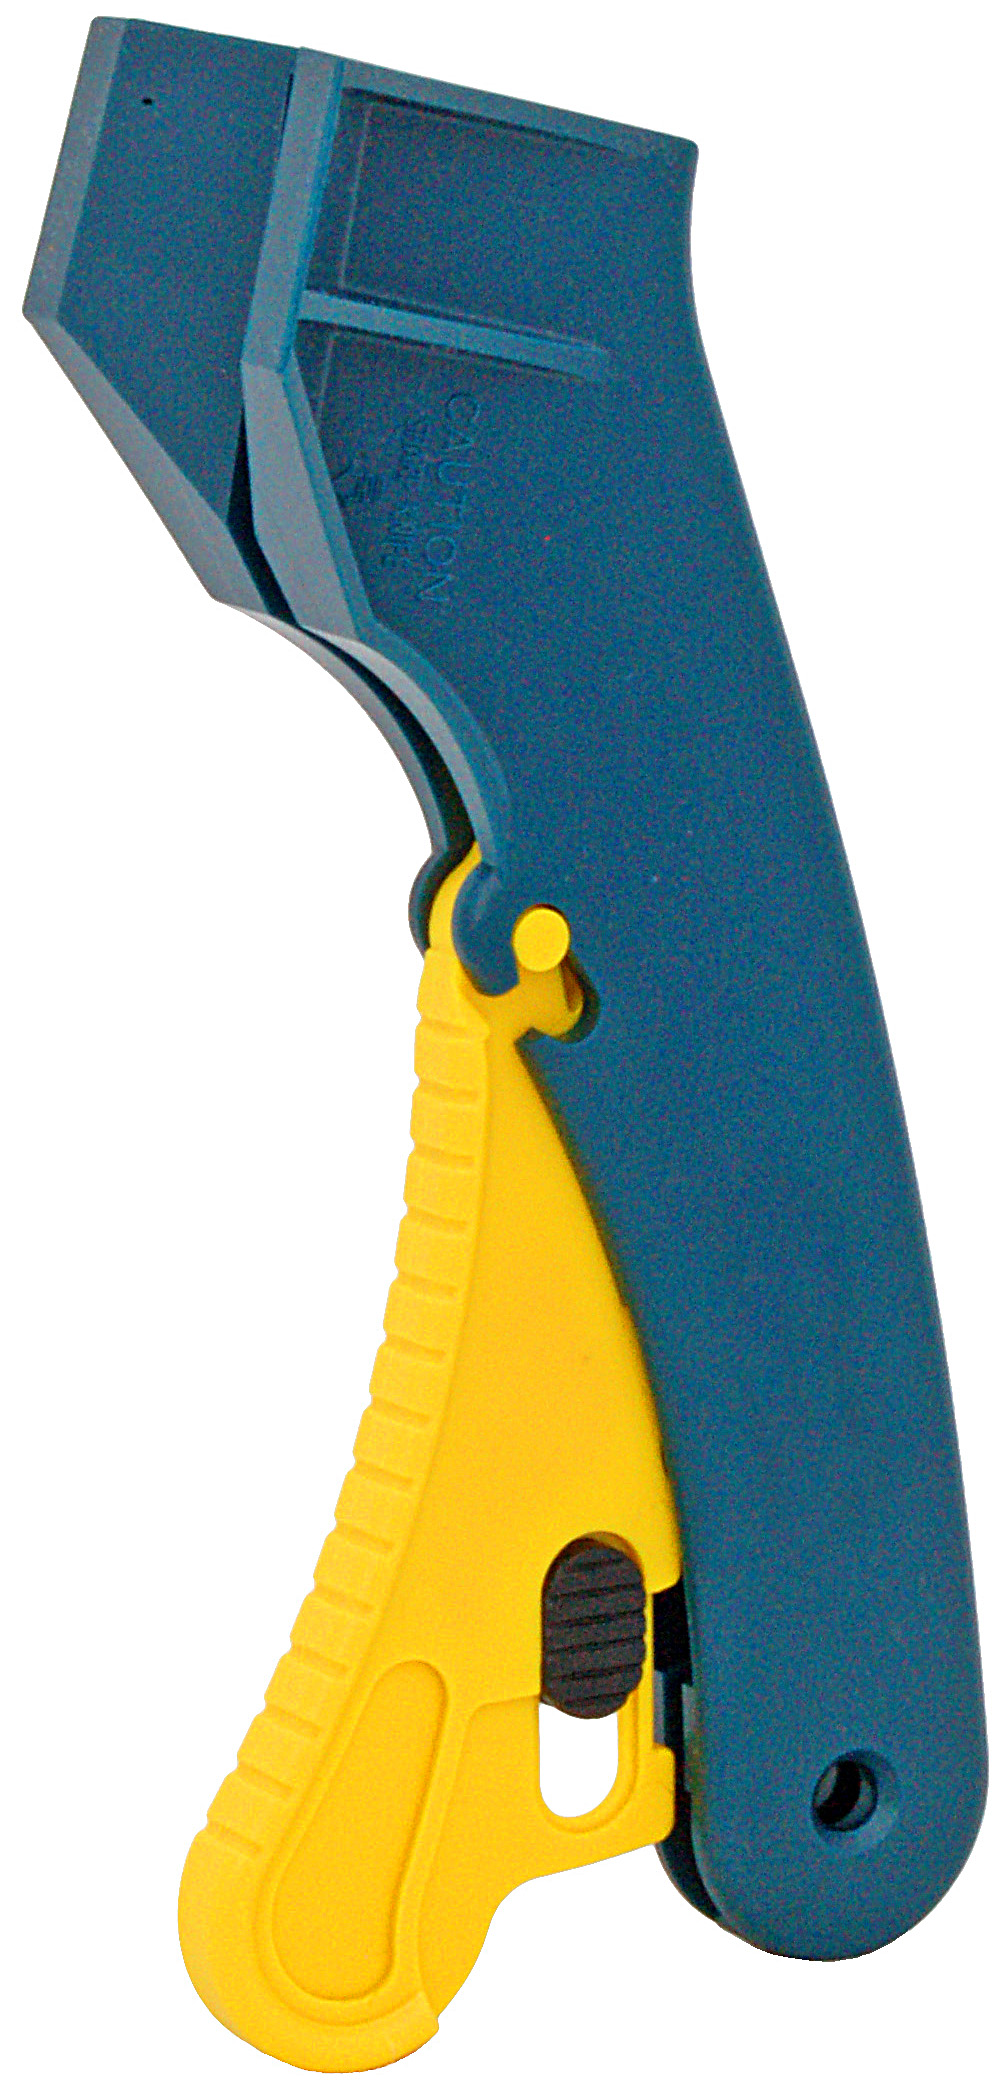 Zenport UK209 Box Top Cutter Utility Knife with Safety Lock